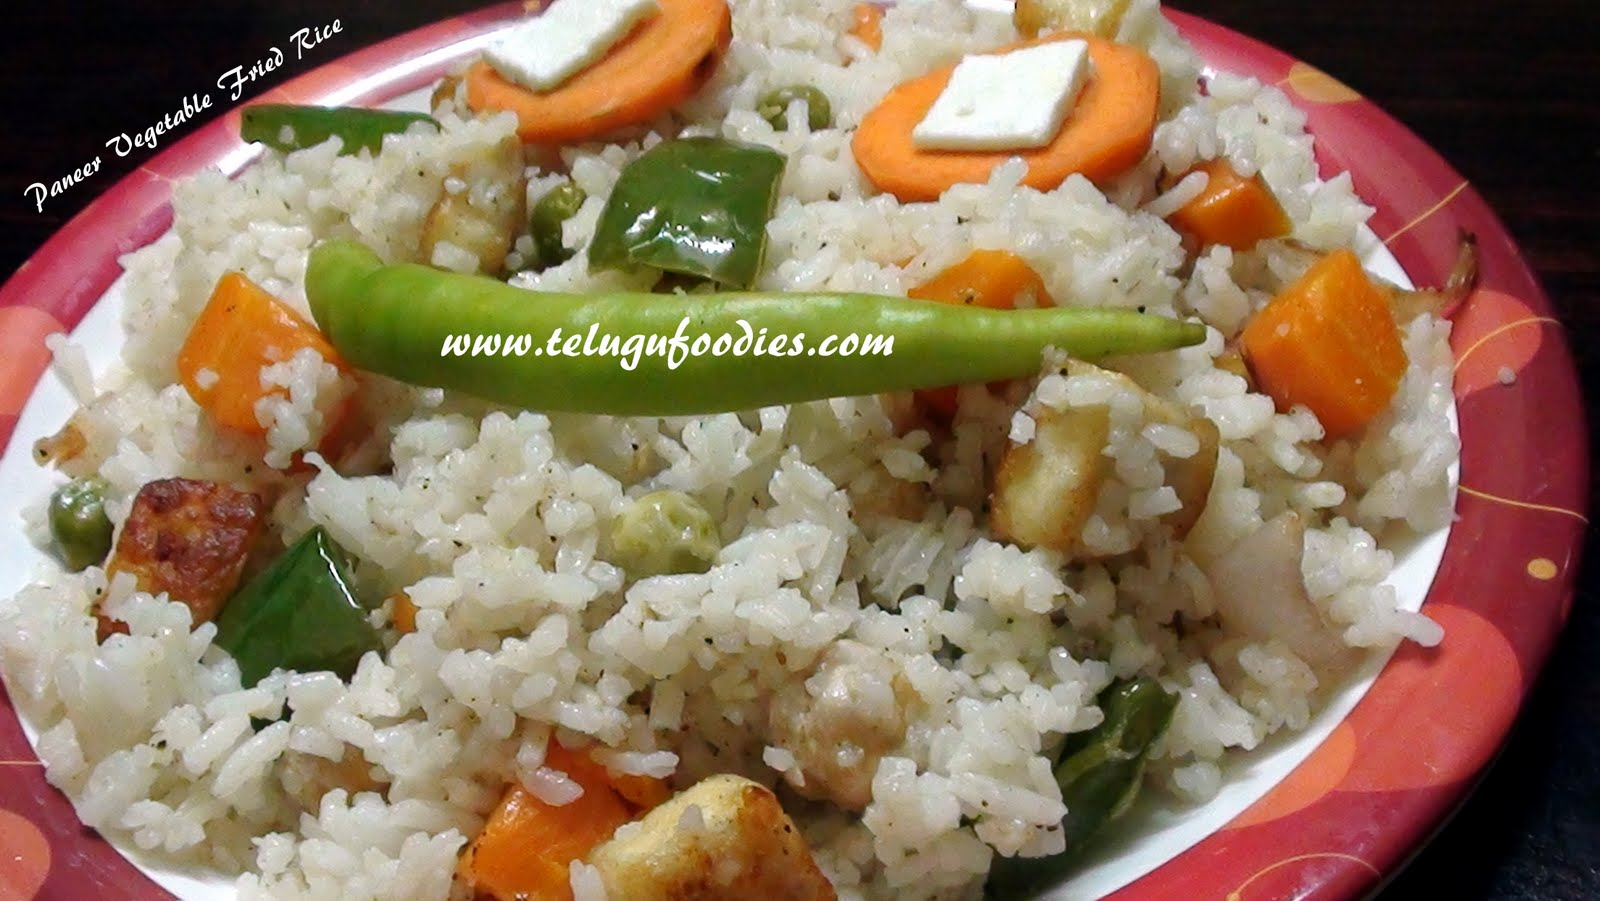 Paneer vegetable fried rice homemade telugu recipes ccuart Image collections